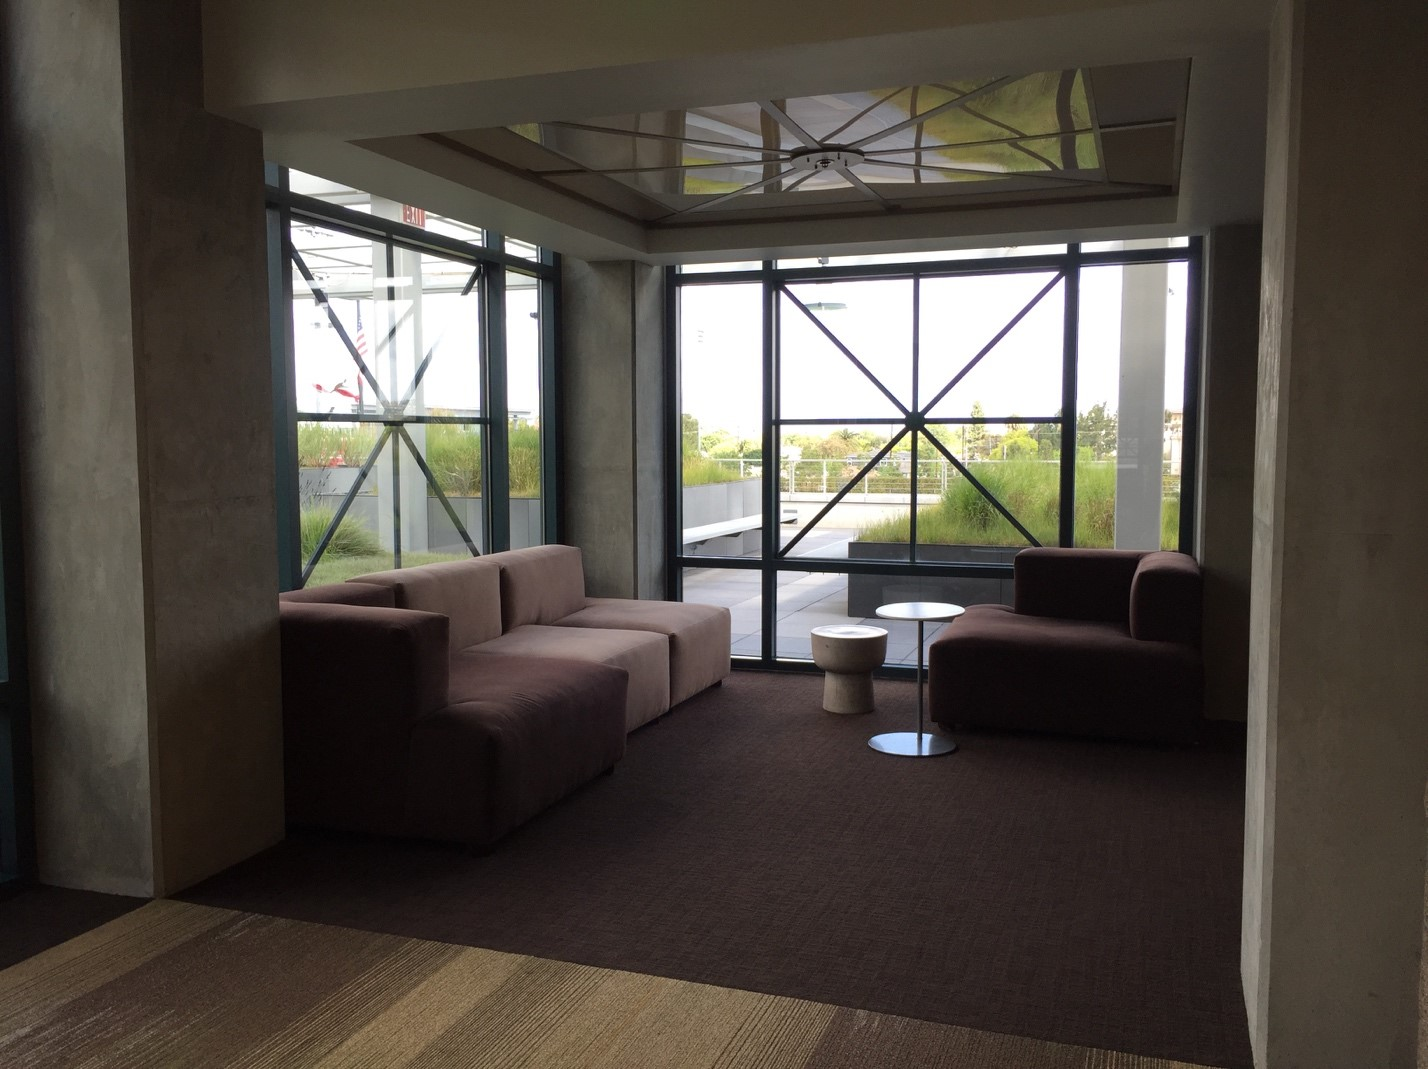 Area with chairs next to window.